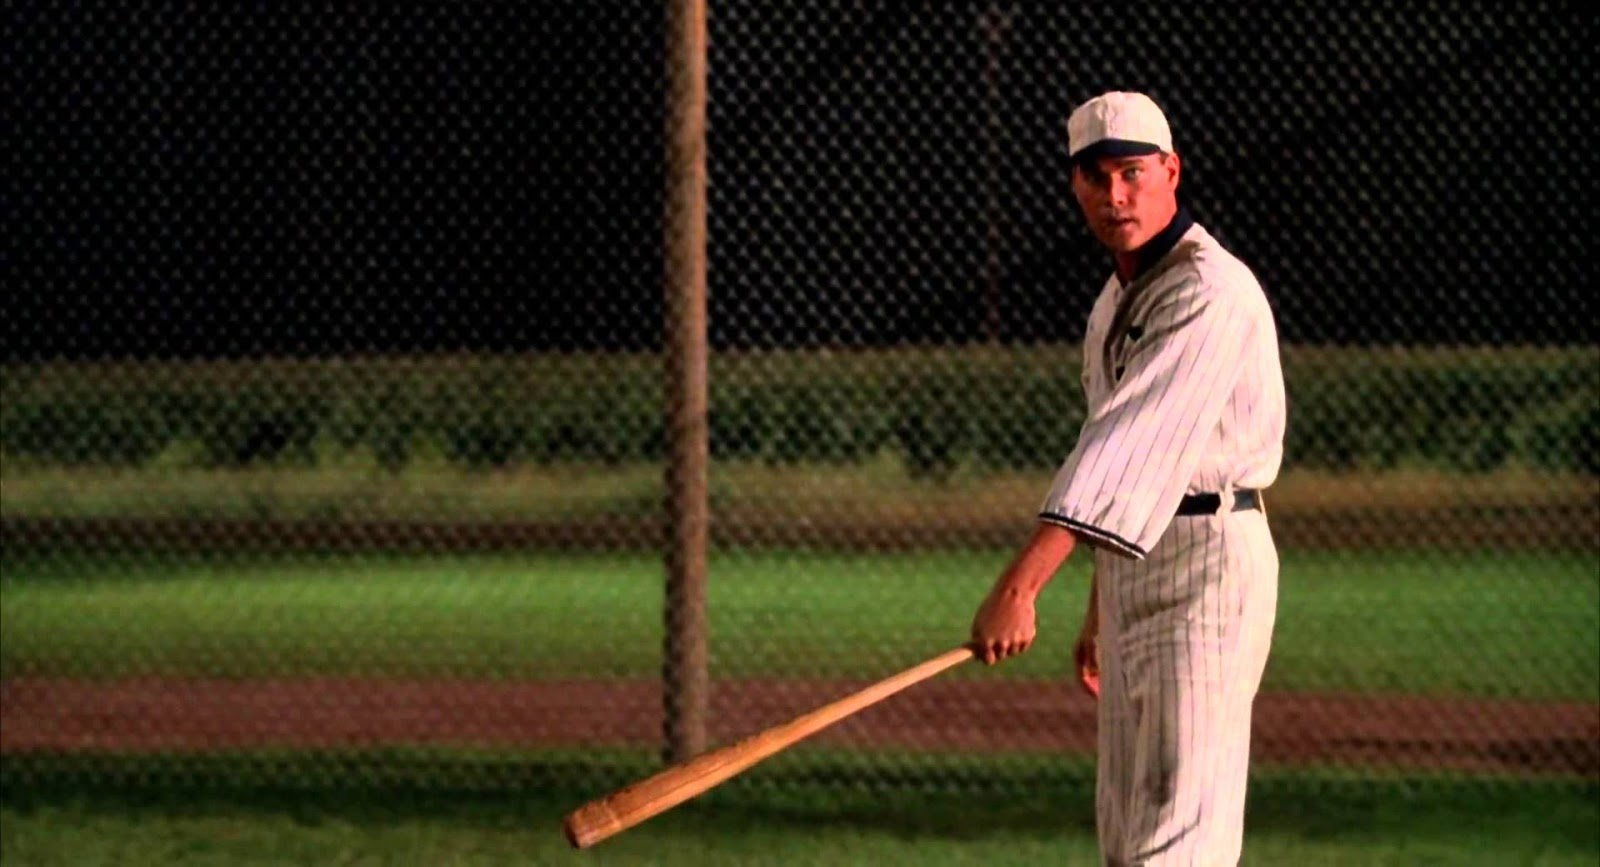 an analysis of ray kinsella in the movie field of dreams In field of dreams, costner's character, ray kinsella, builds the ball field for shoeless joe after hearing a voice in his cornfield say, if you build it, he will come later, he nearly loses his farm as he sets off on a cross-country search for a famous reclusive author (played by james earl jones) and another old baseball pro (burt lancaster.